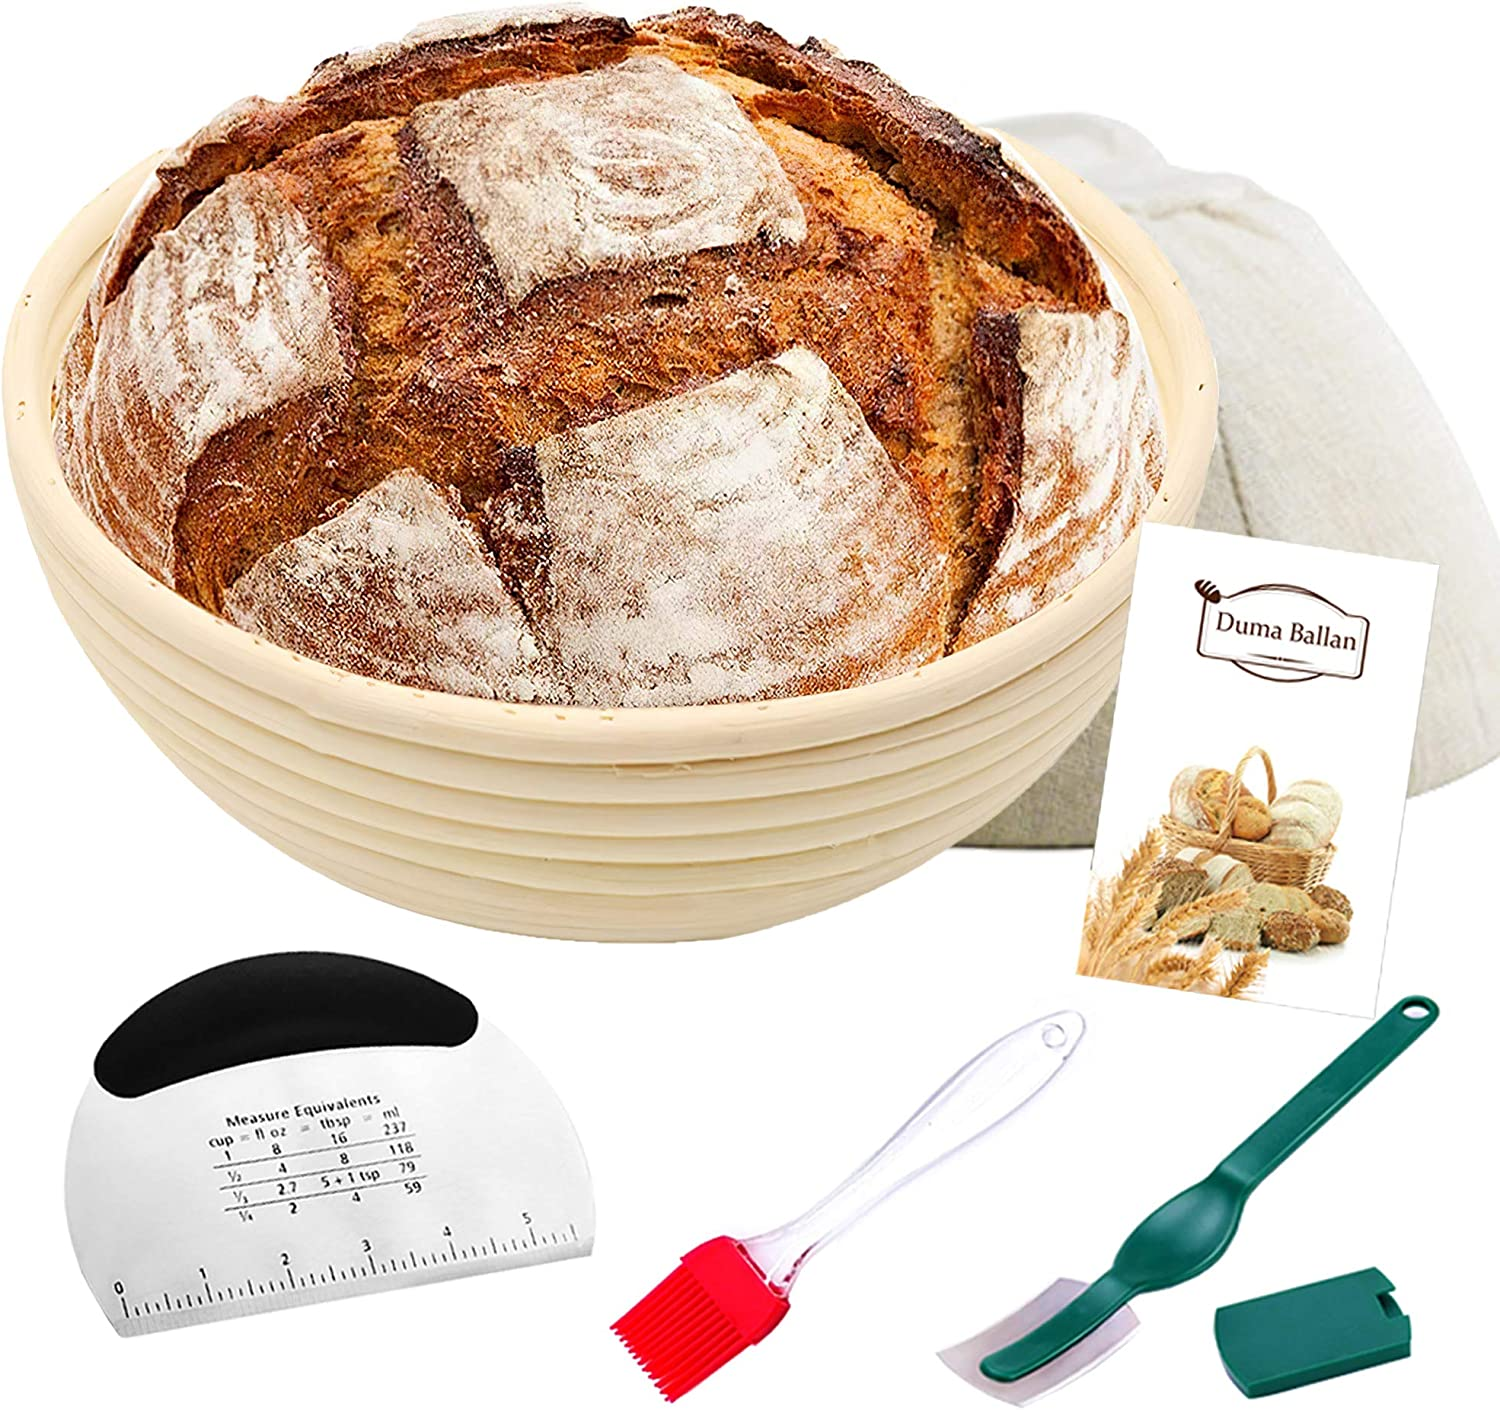 Okotxs Round Banneton Proofing Basket 10 Inch - Round Brotform Proofing Basket With Dough Scraper, Oil Brush & Cloth Liner - Artisan Bread Baking Supplies - Proofing Baskets For Sourdough Bread